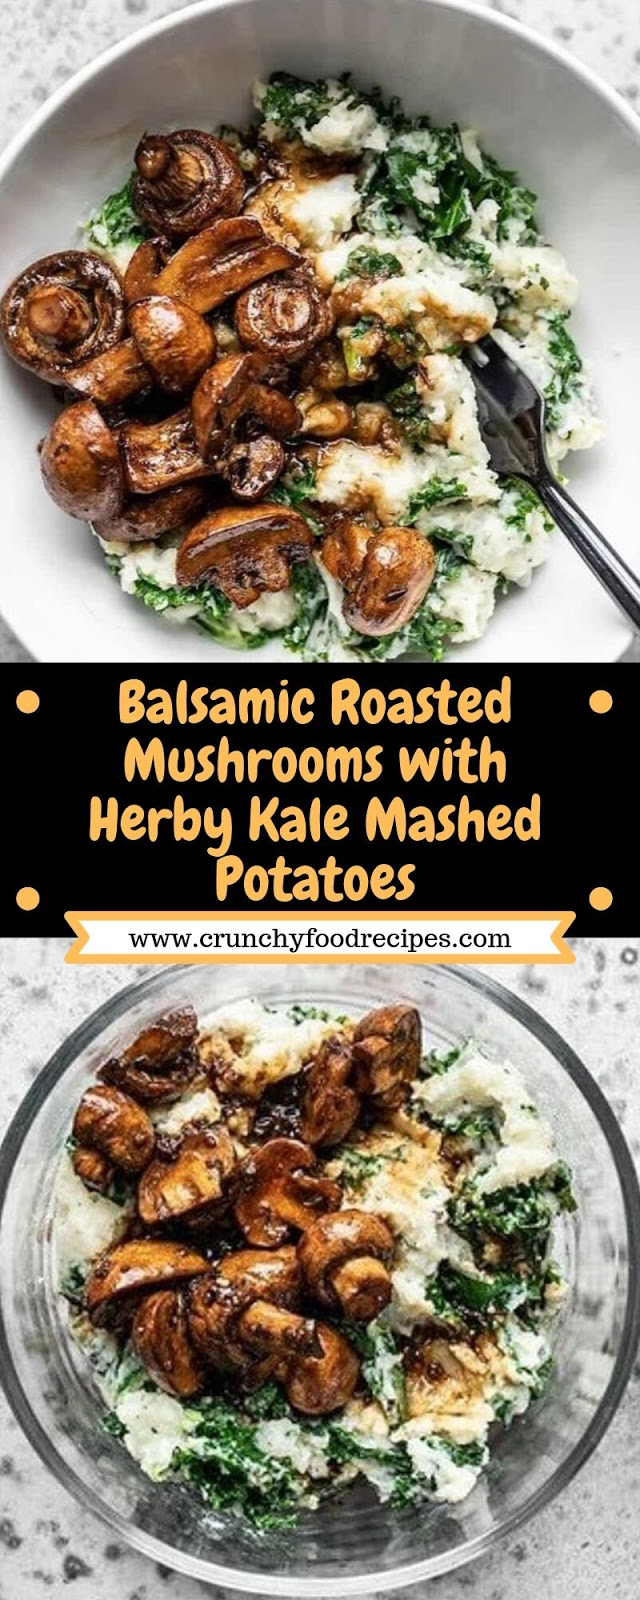 Balsamic Roasted Mushrooms with Herby Kale Mashed Potatoes